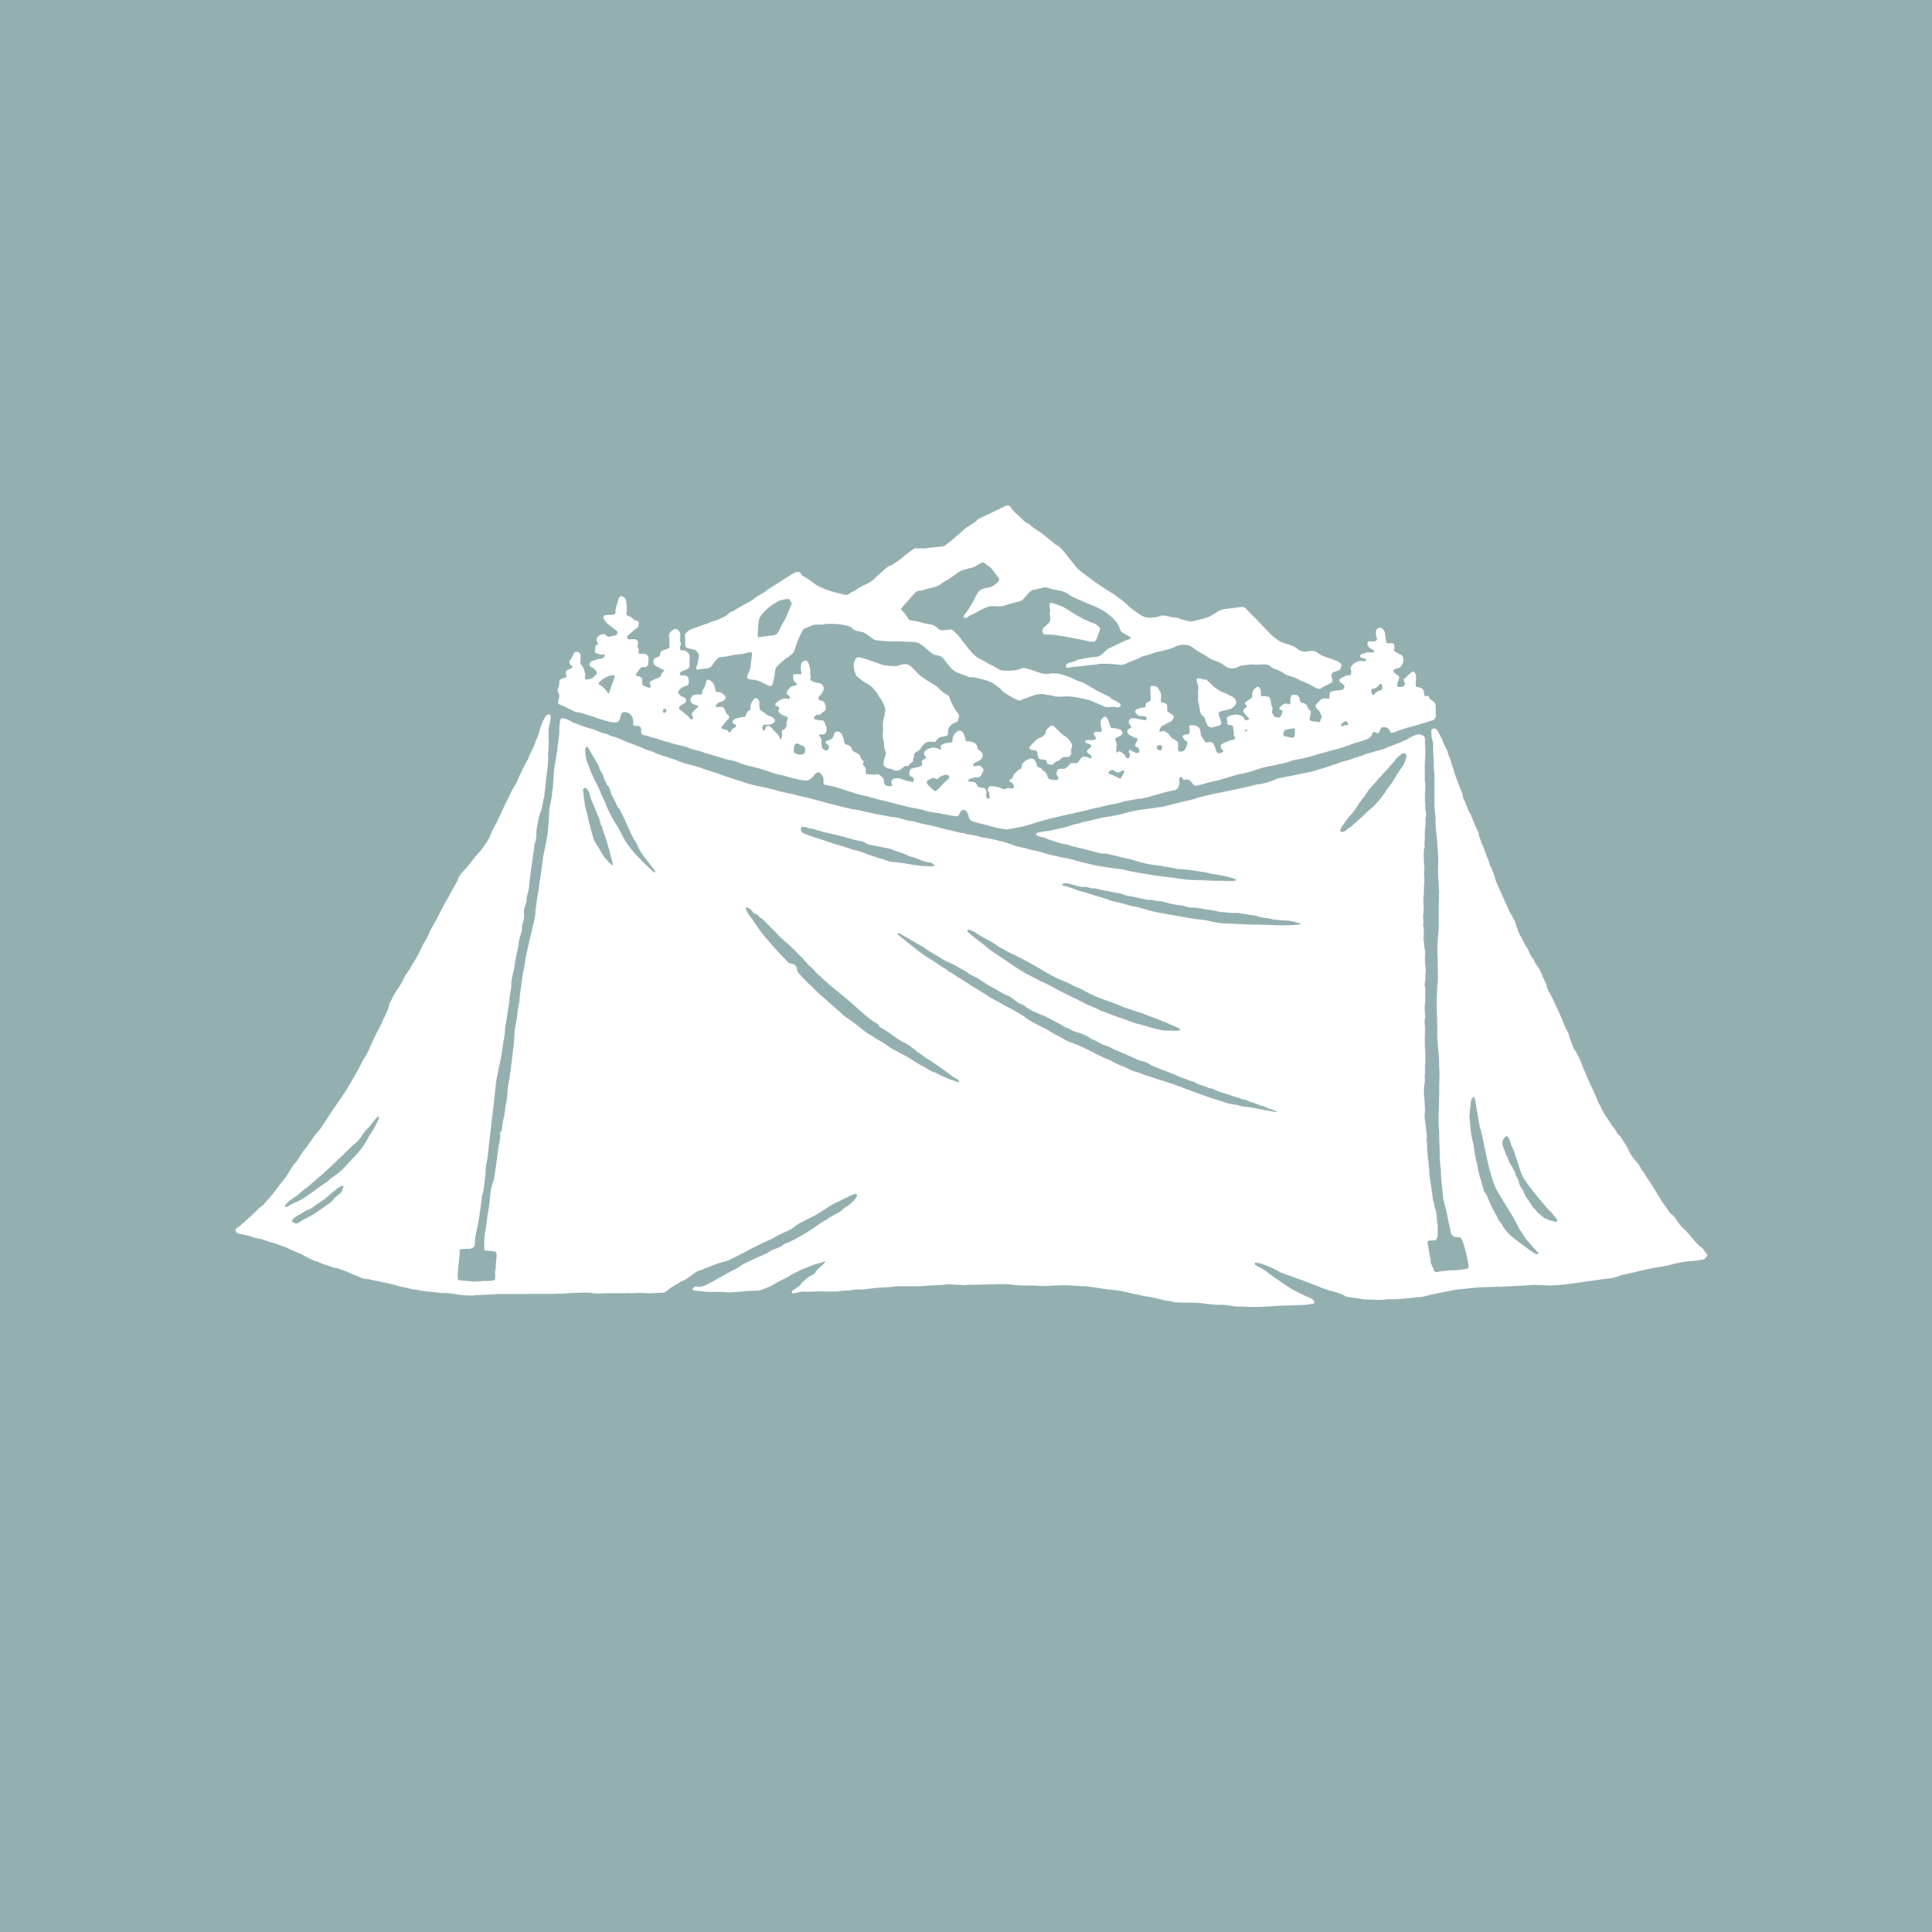 rainfly_mtns-01.png